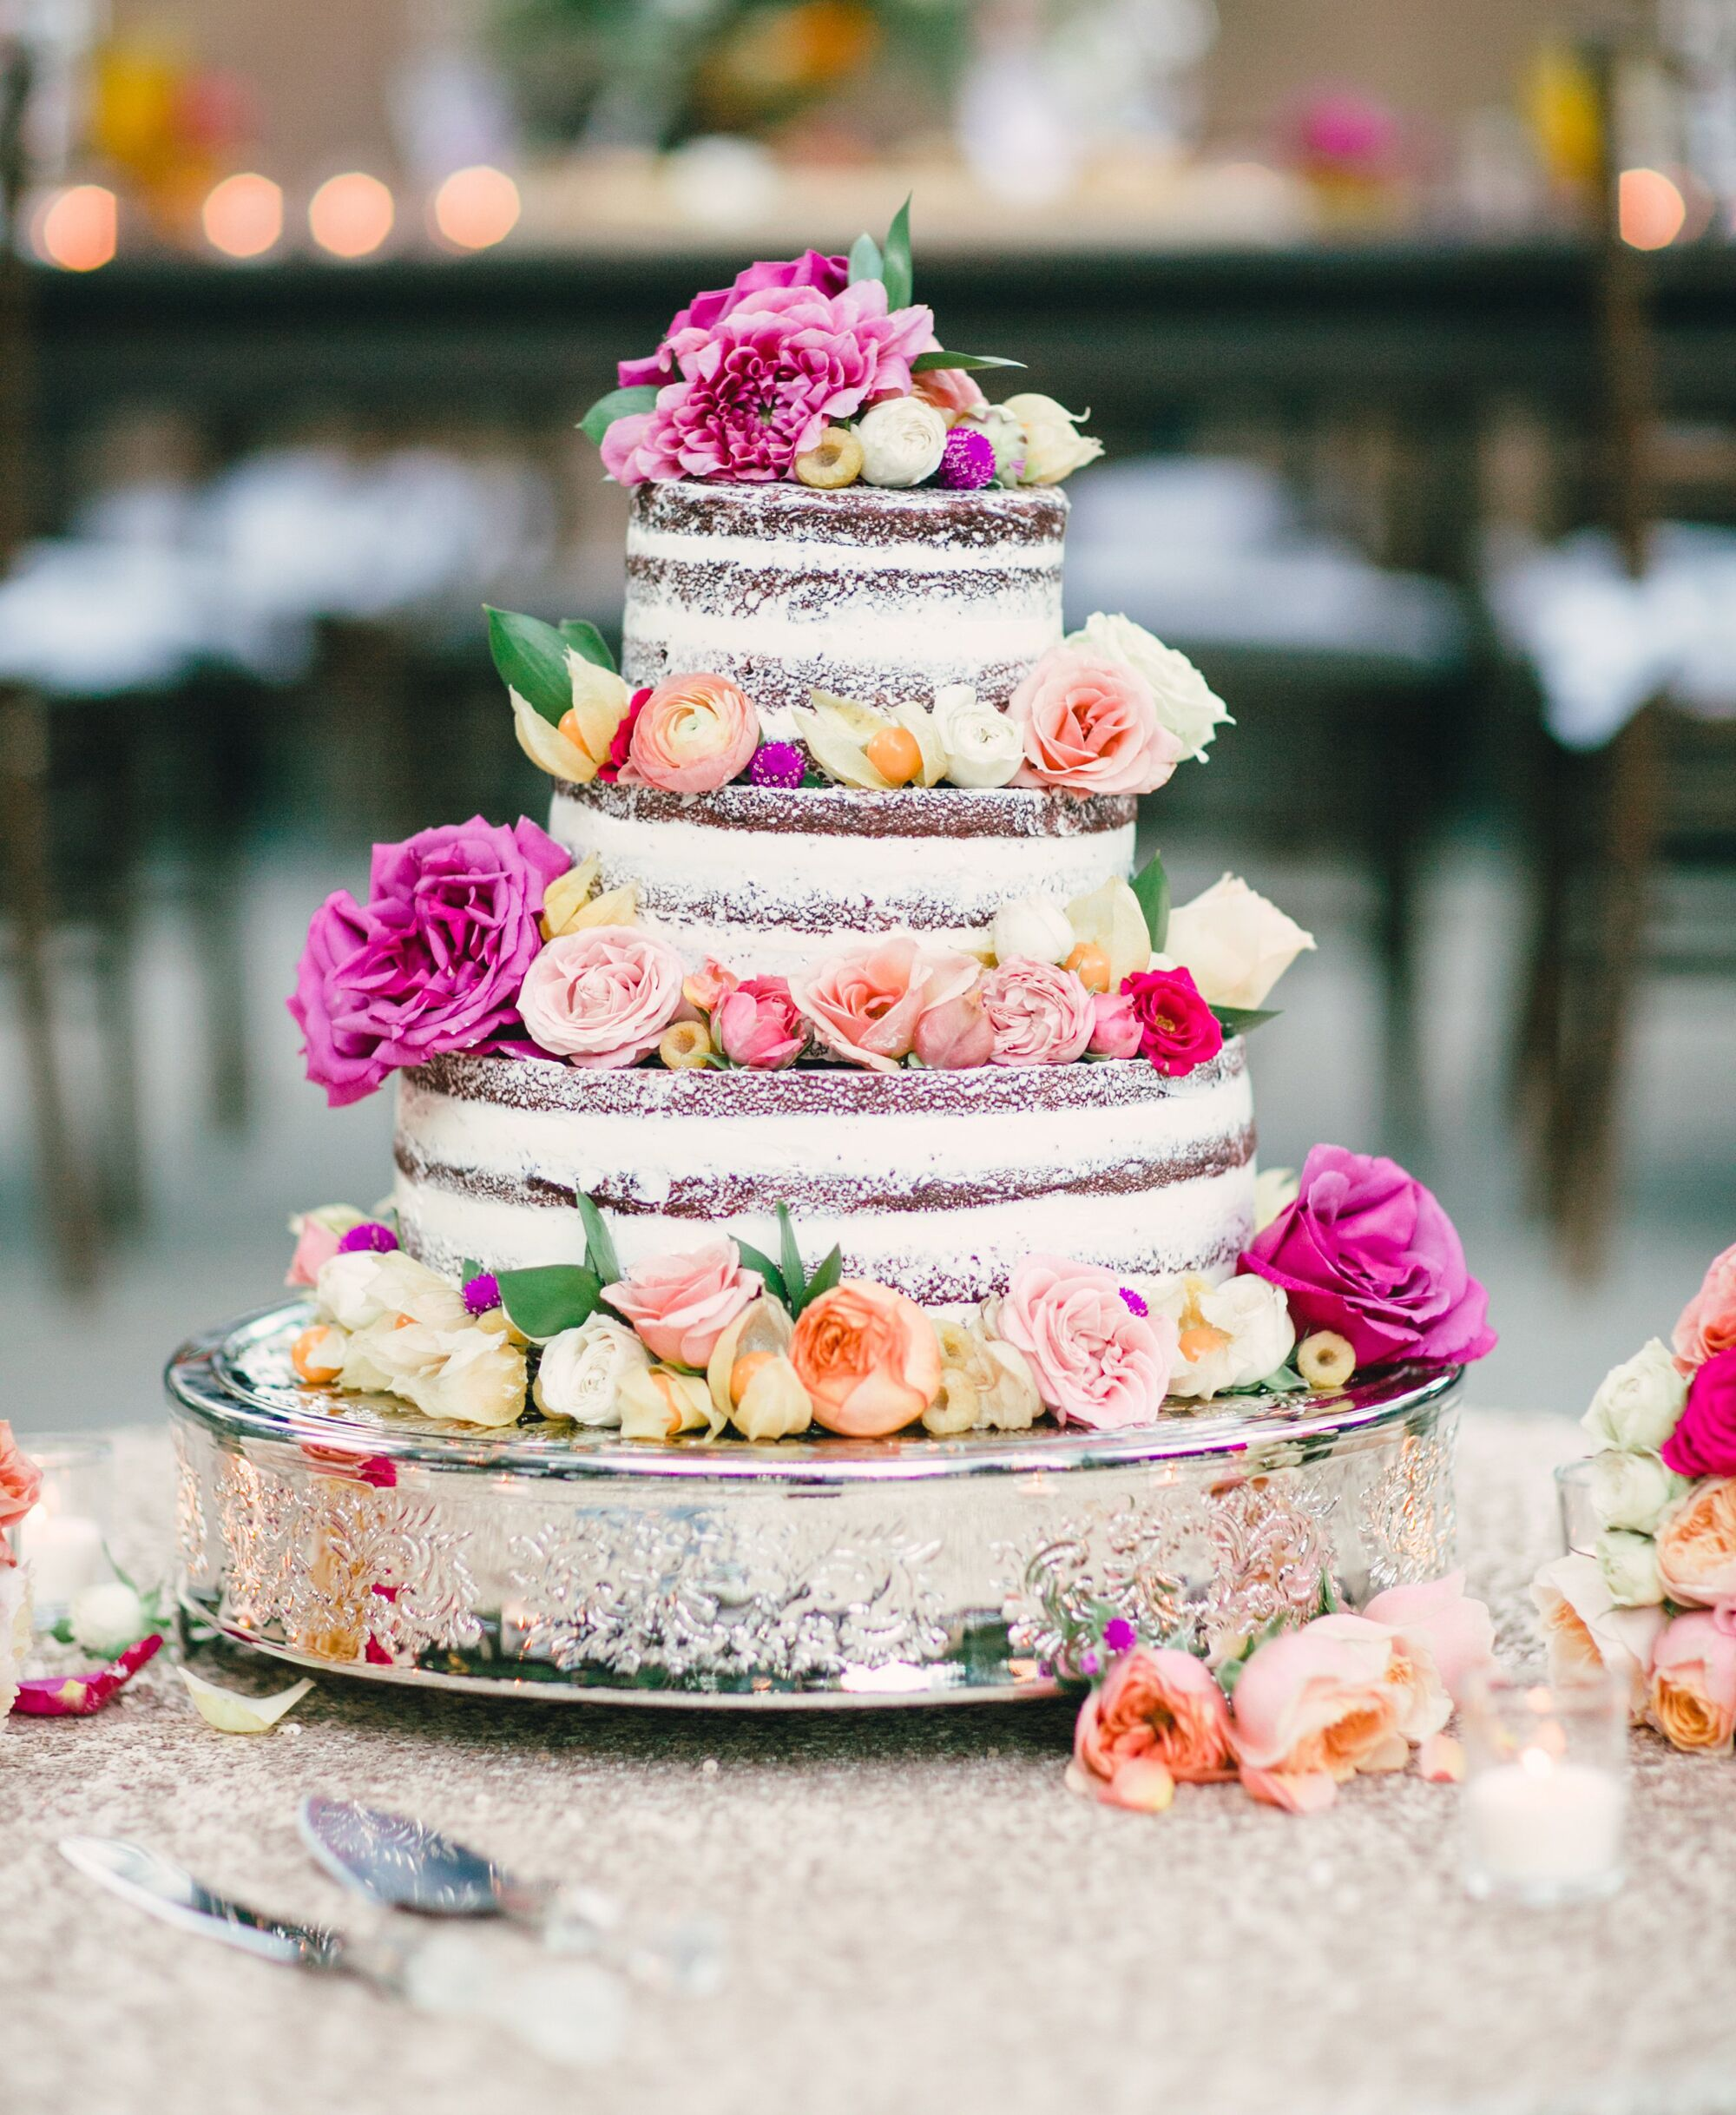 Sweet And Simple Naked Wedding Cakes: 10 Naked Cakes You Have To See